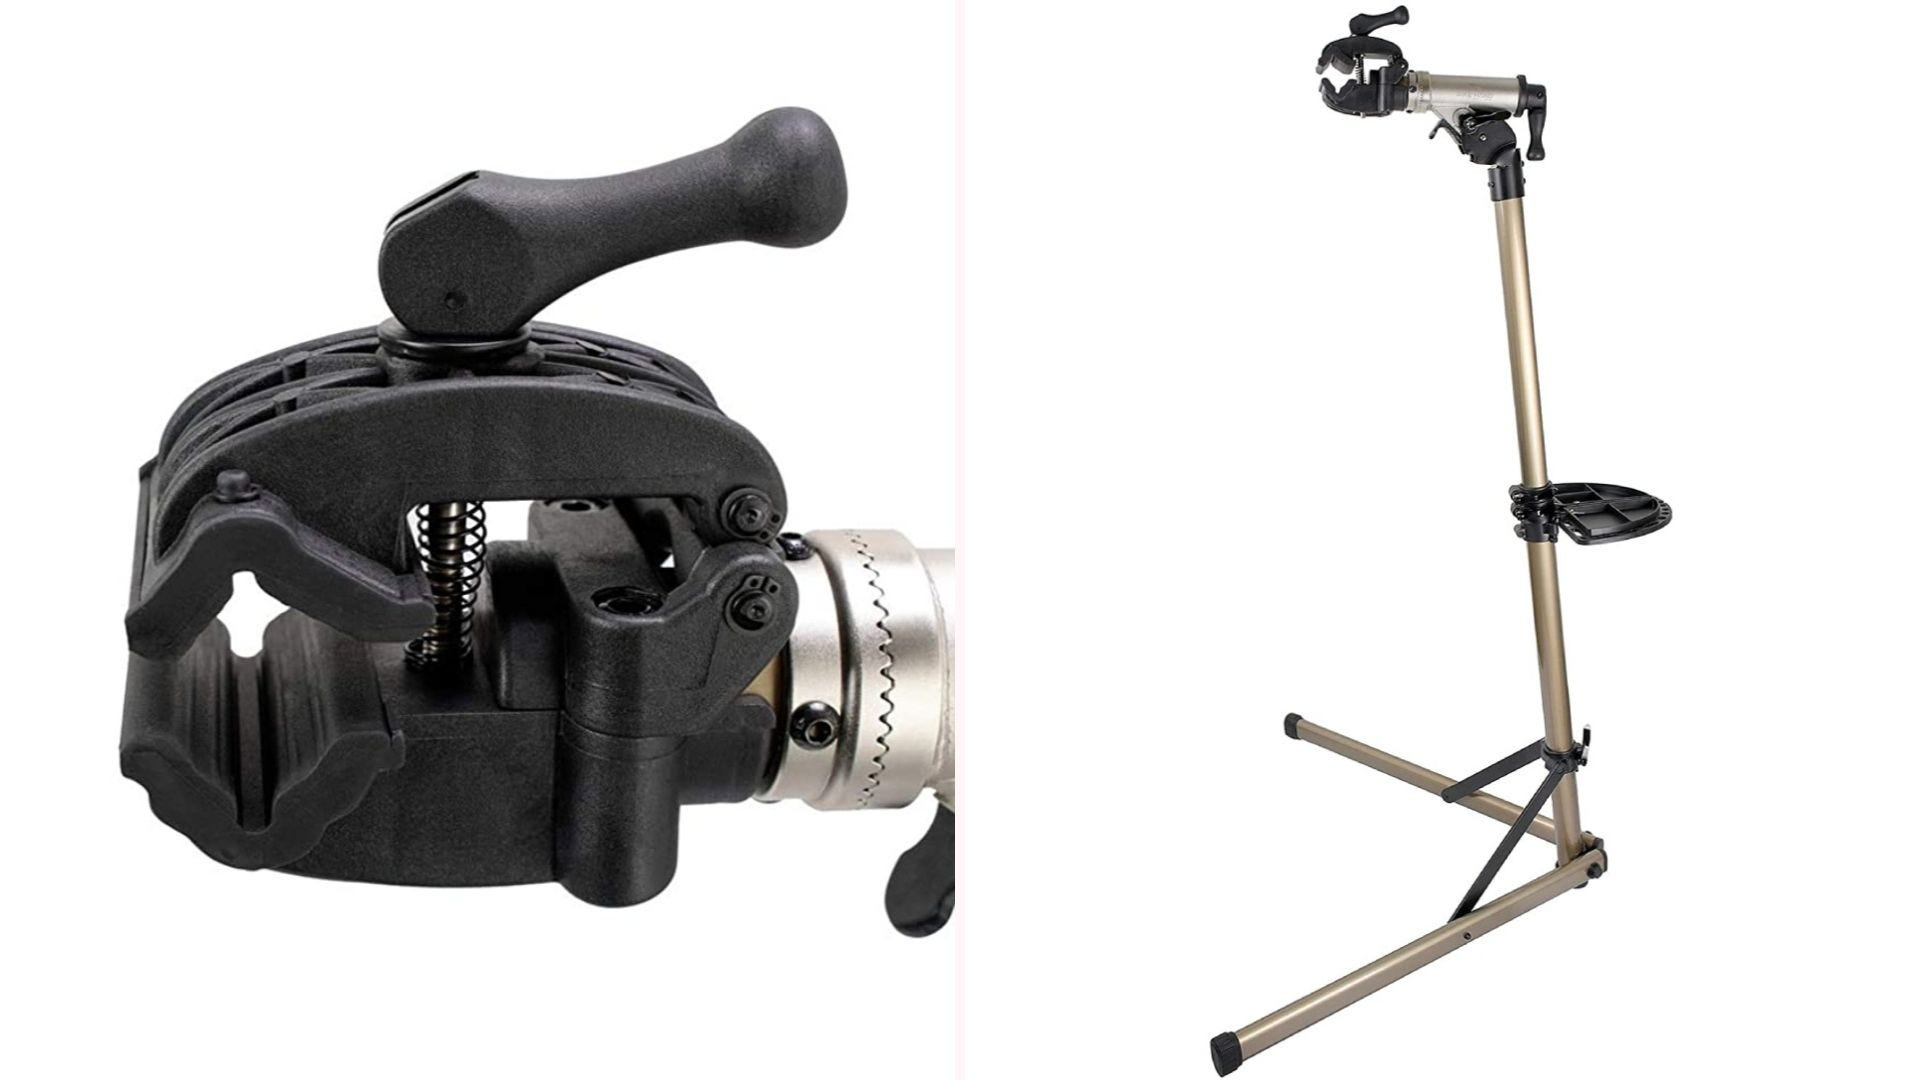 On the left, a black clamp. On the right, a full view of a gold bike stand.